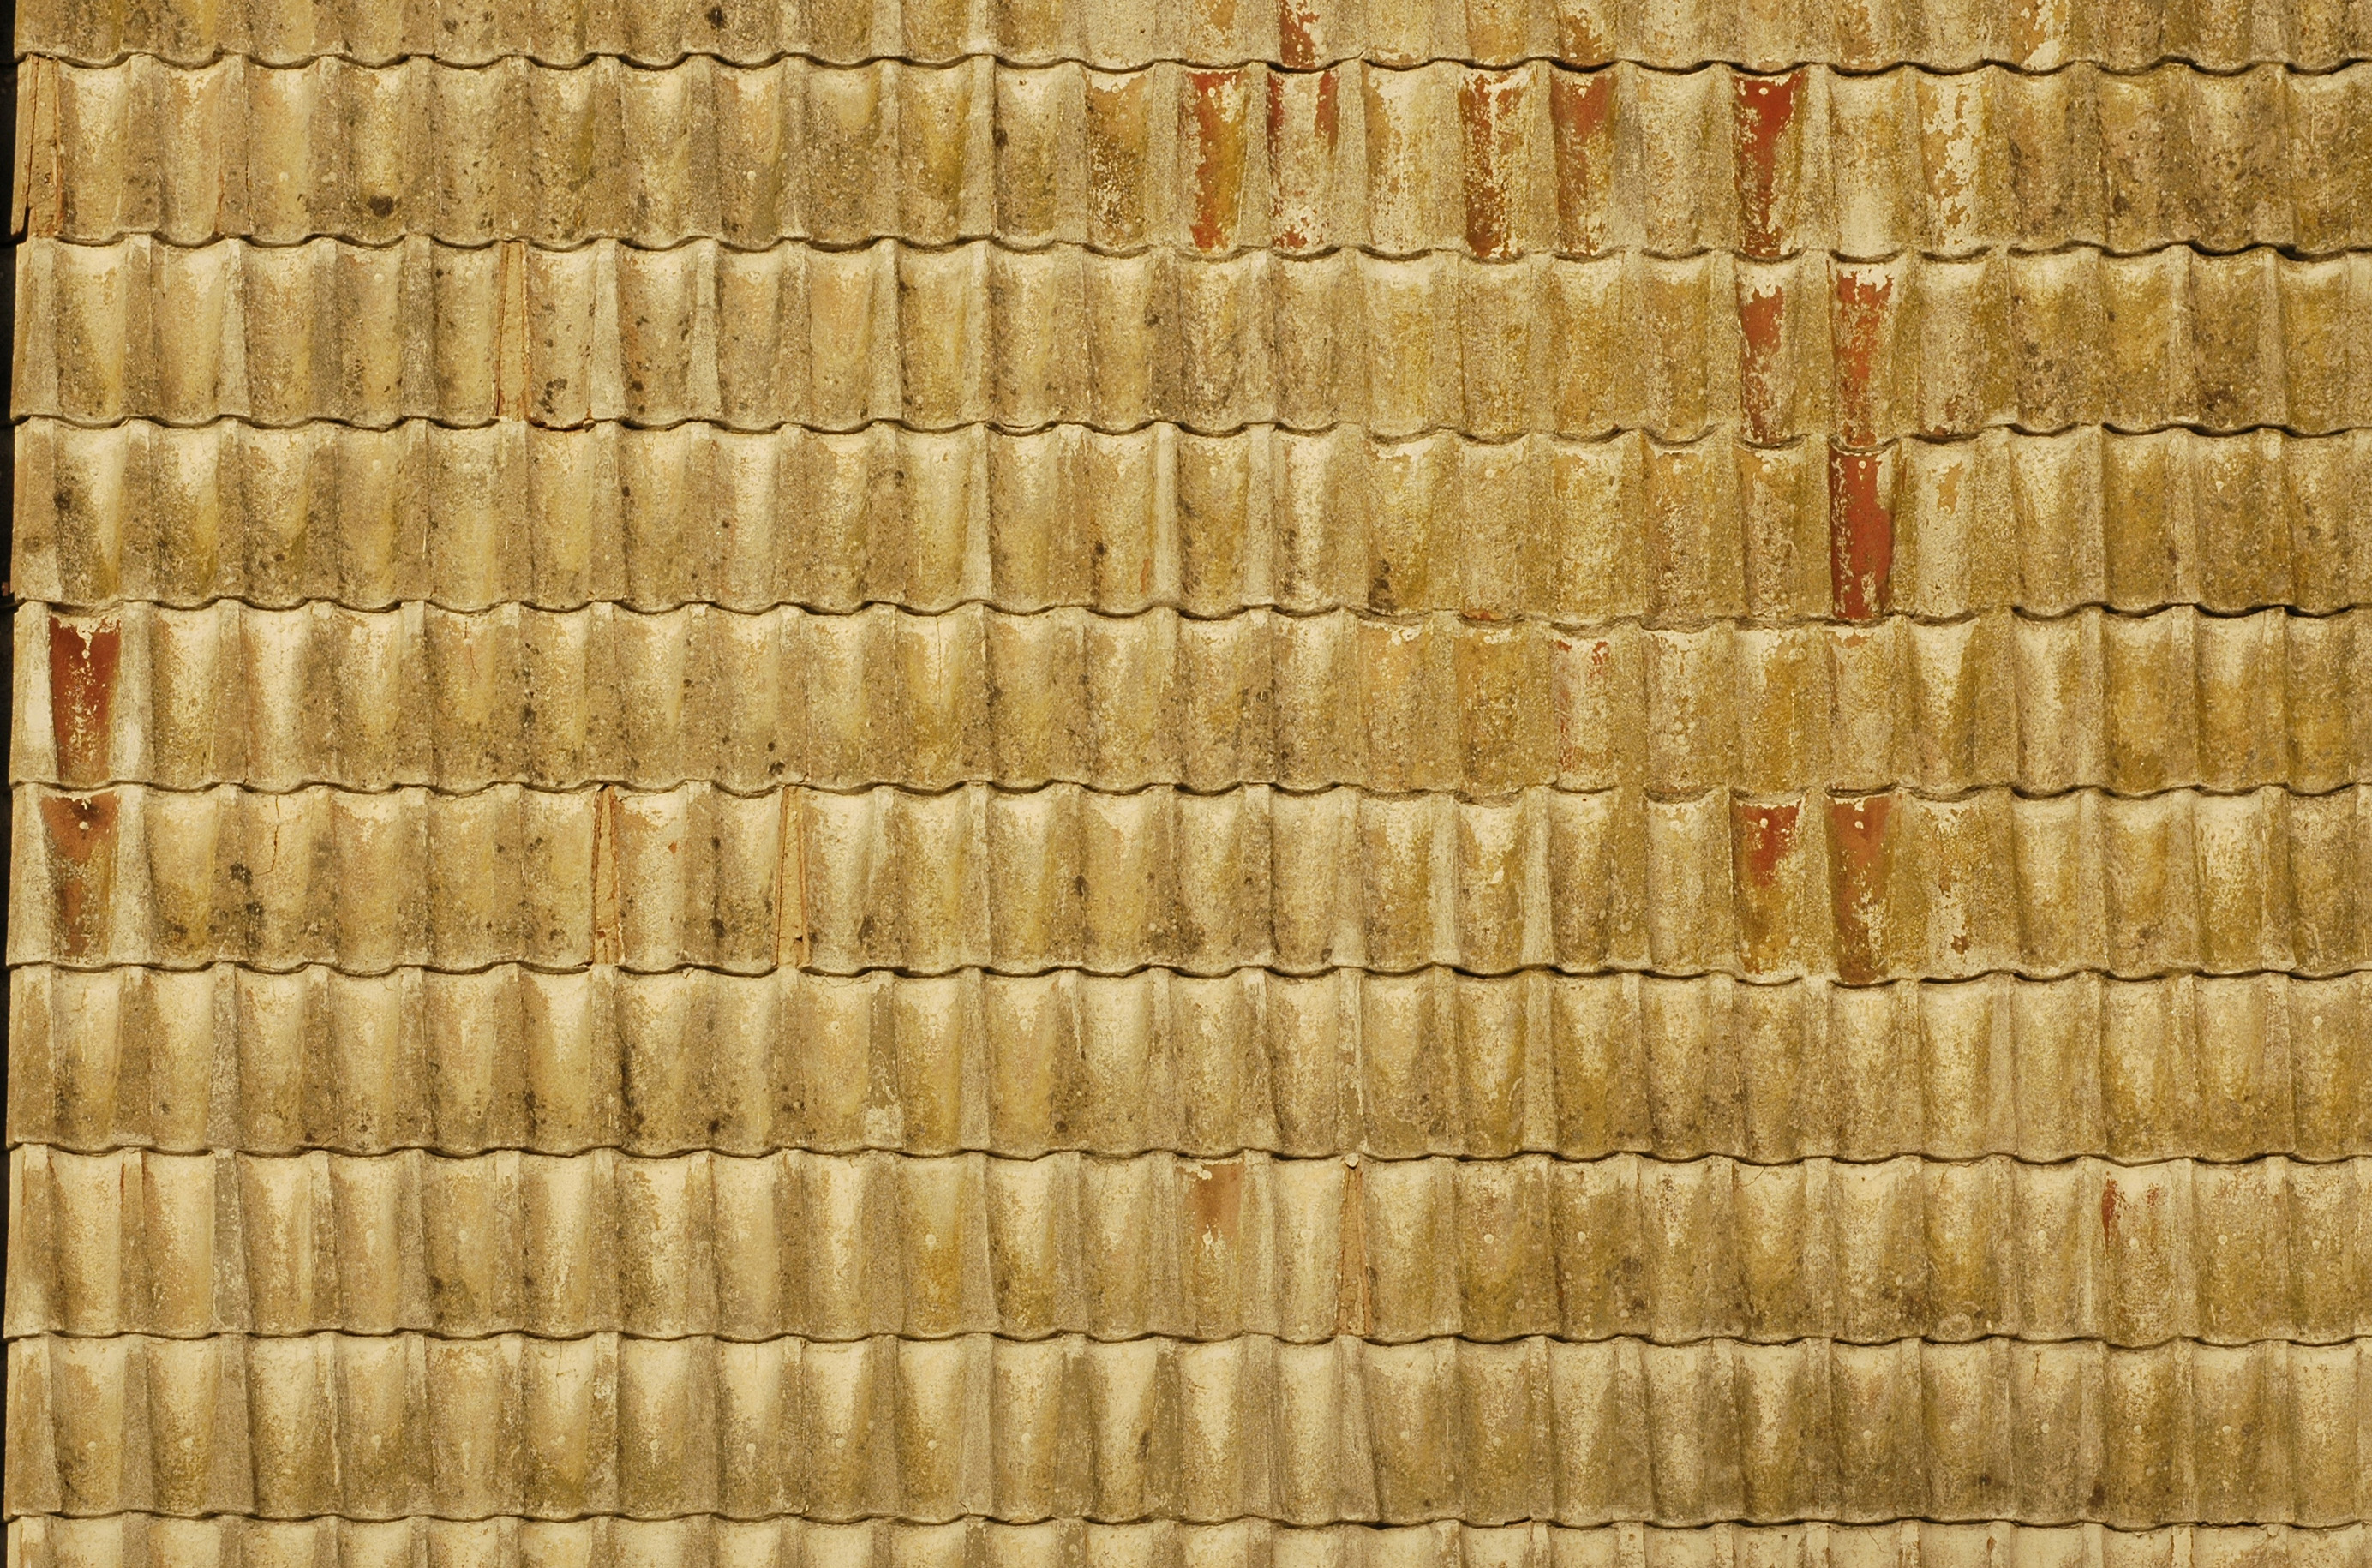 Roof Tile Background Texture Image